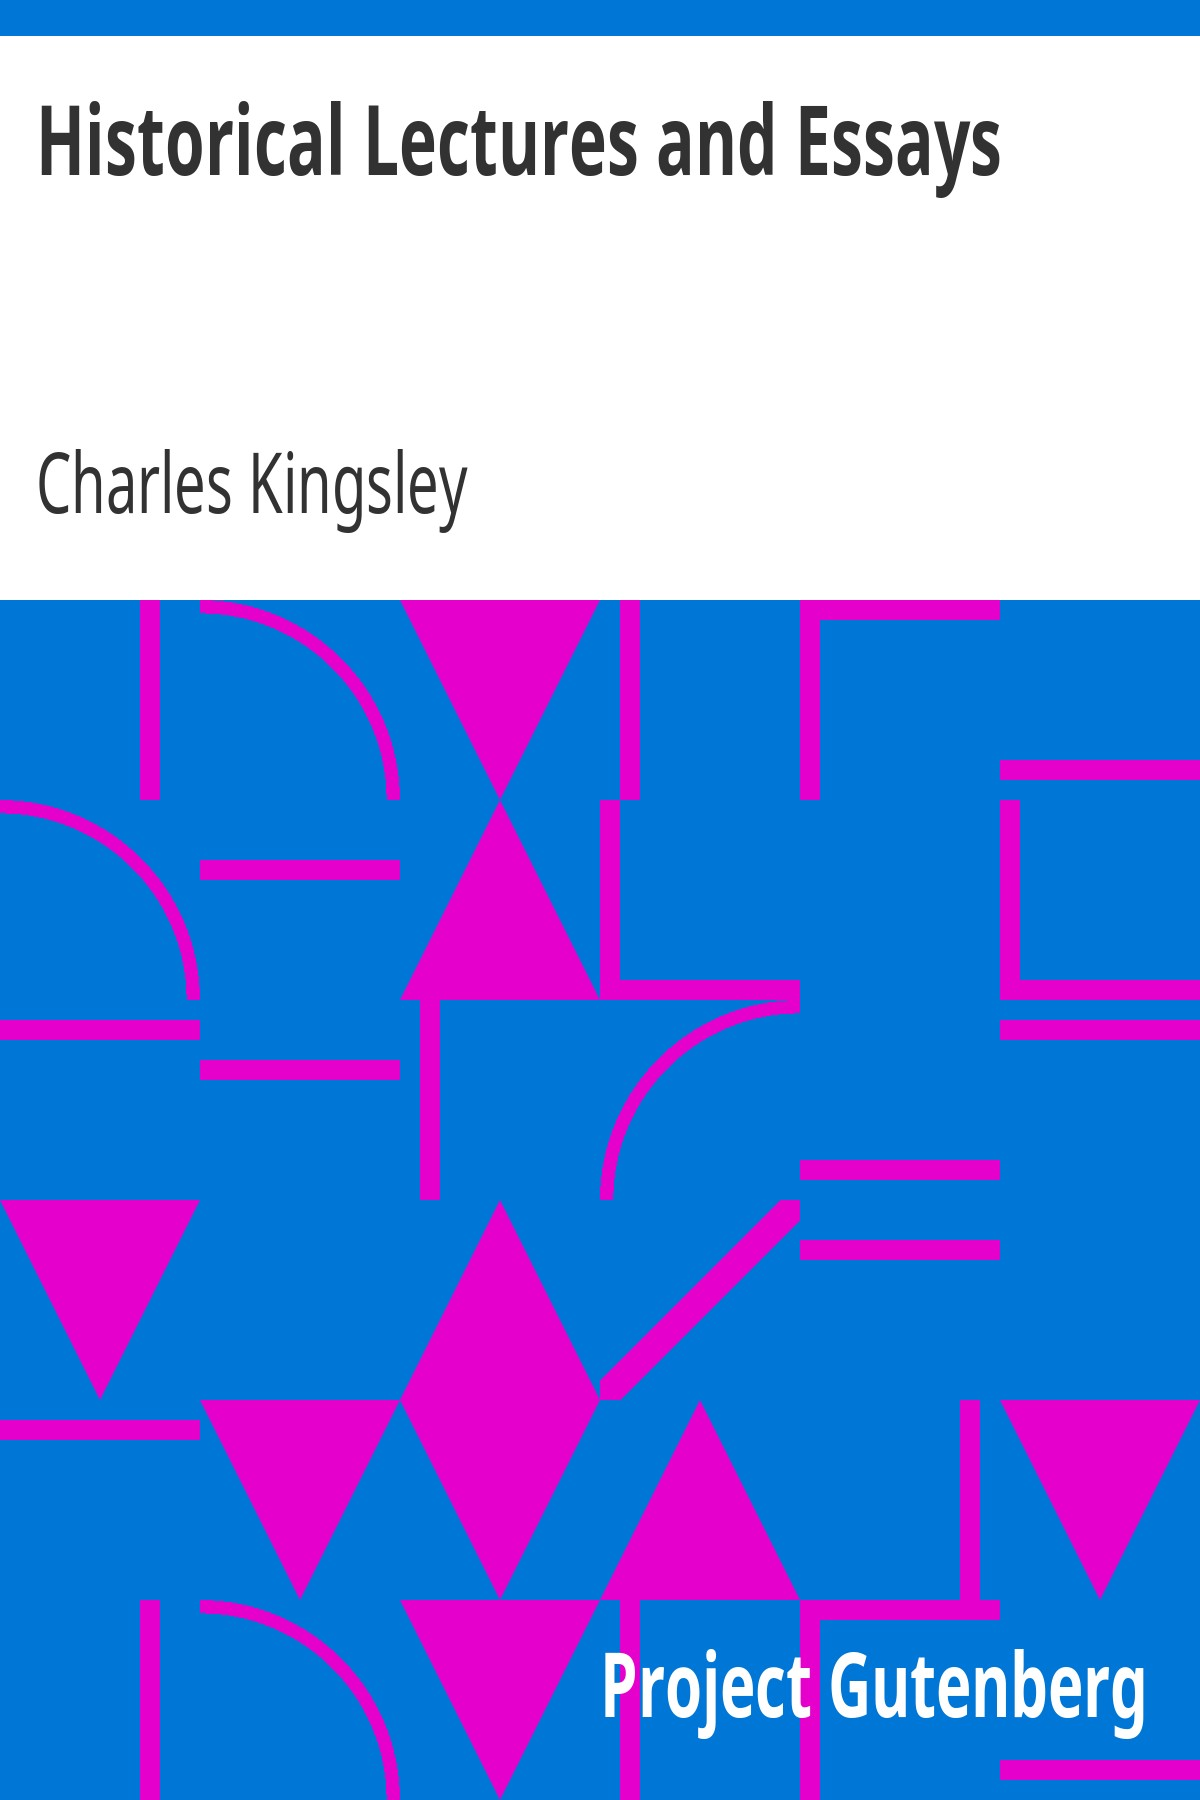 Charles Kingsley Historical Lectures and Essays